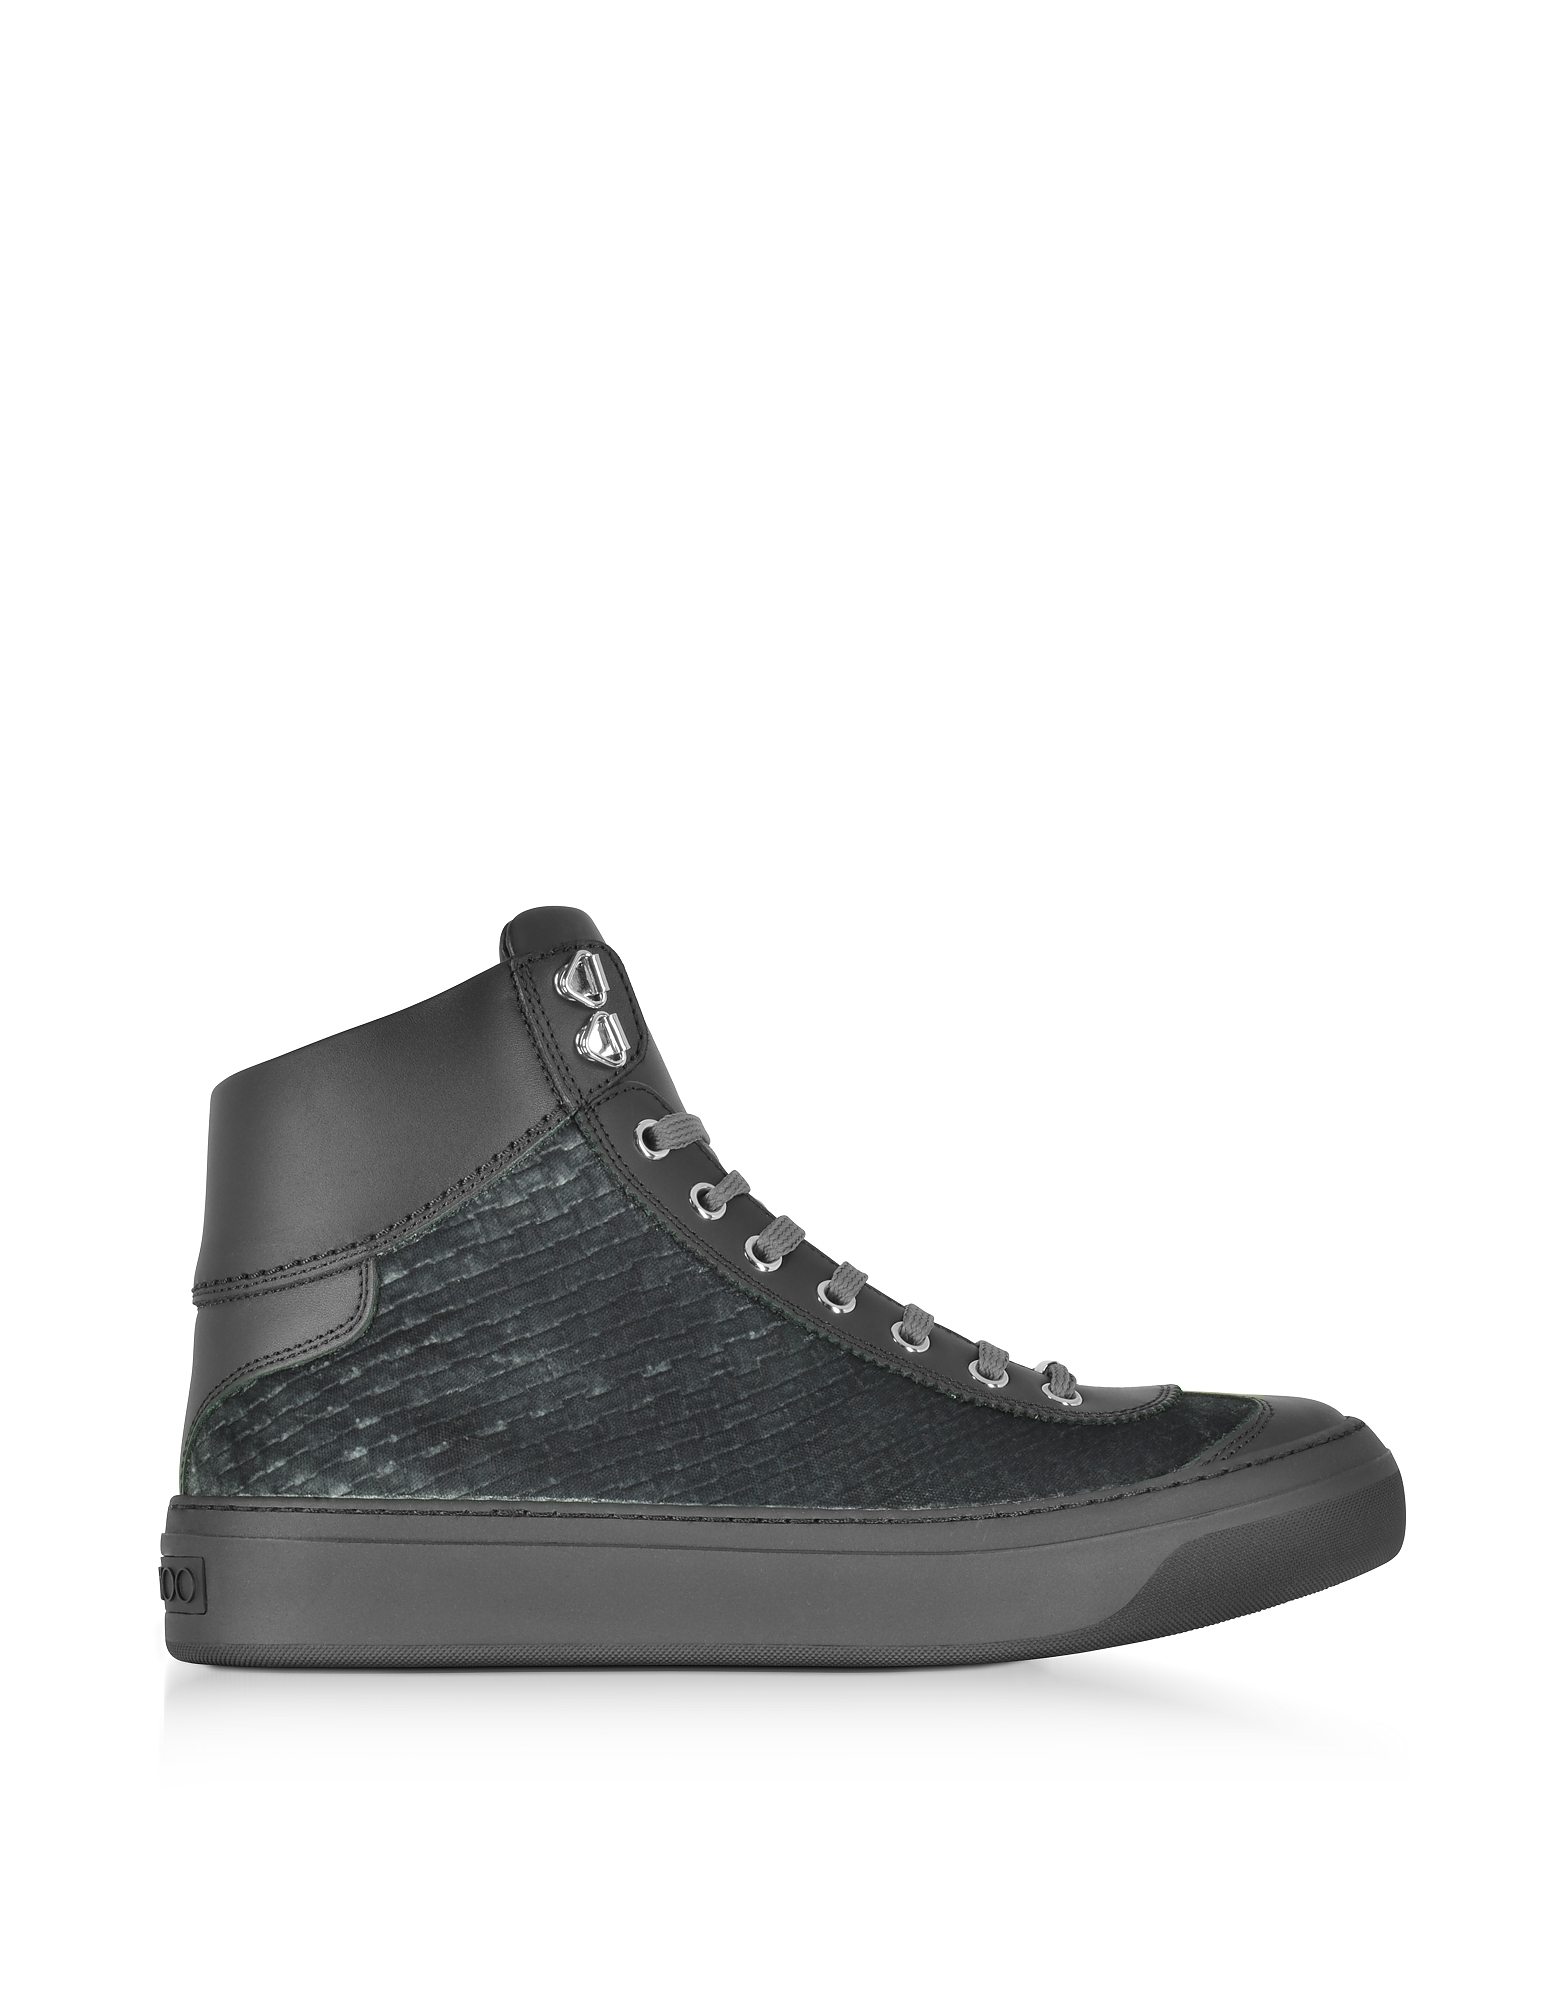 Jimmy Choo Shoes, Argyle Dust Grey Embossed Velvet High Top Sneakers